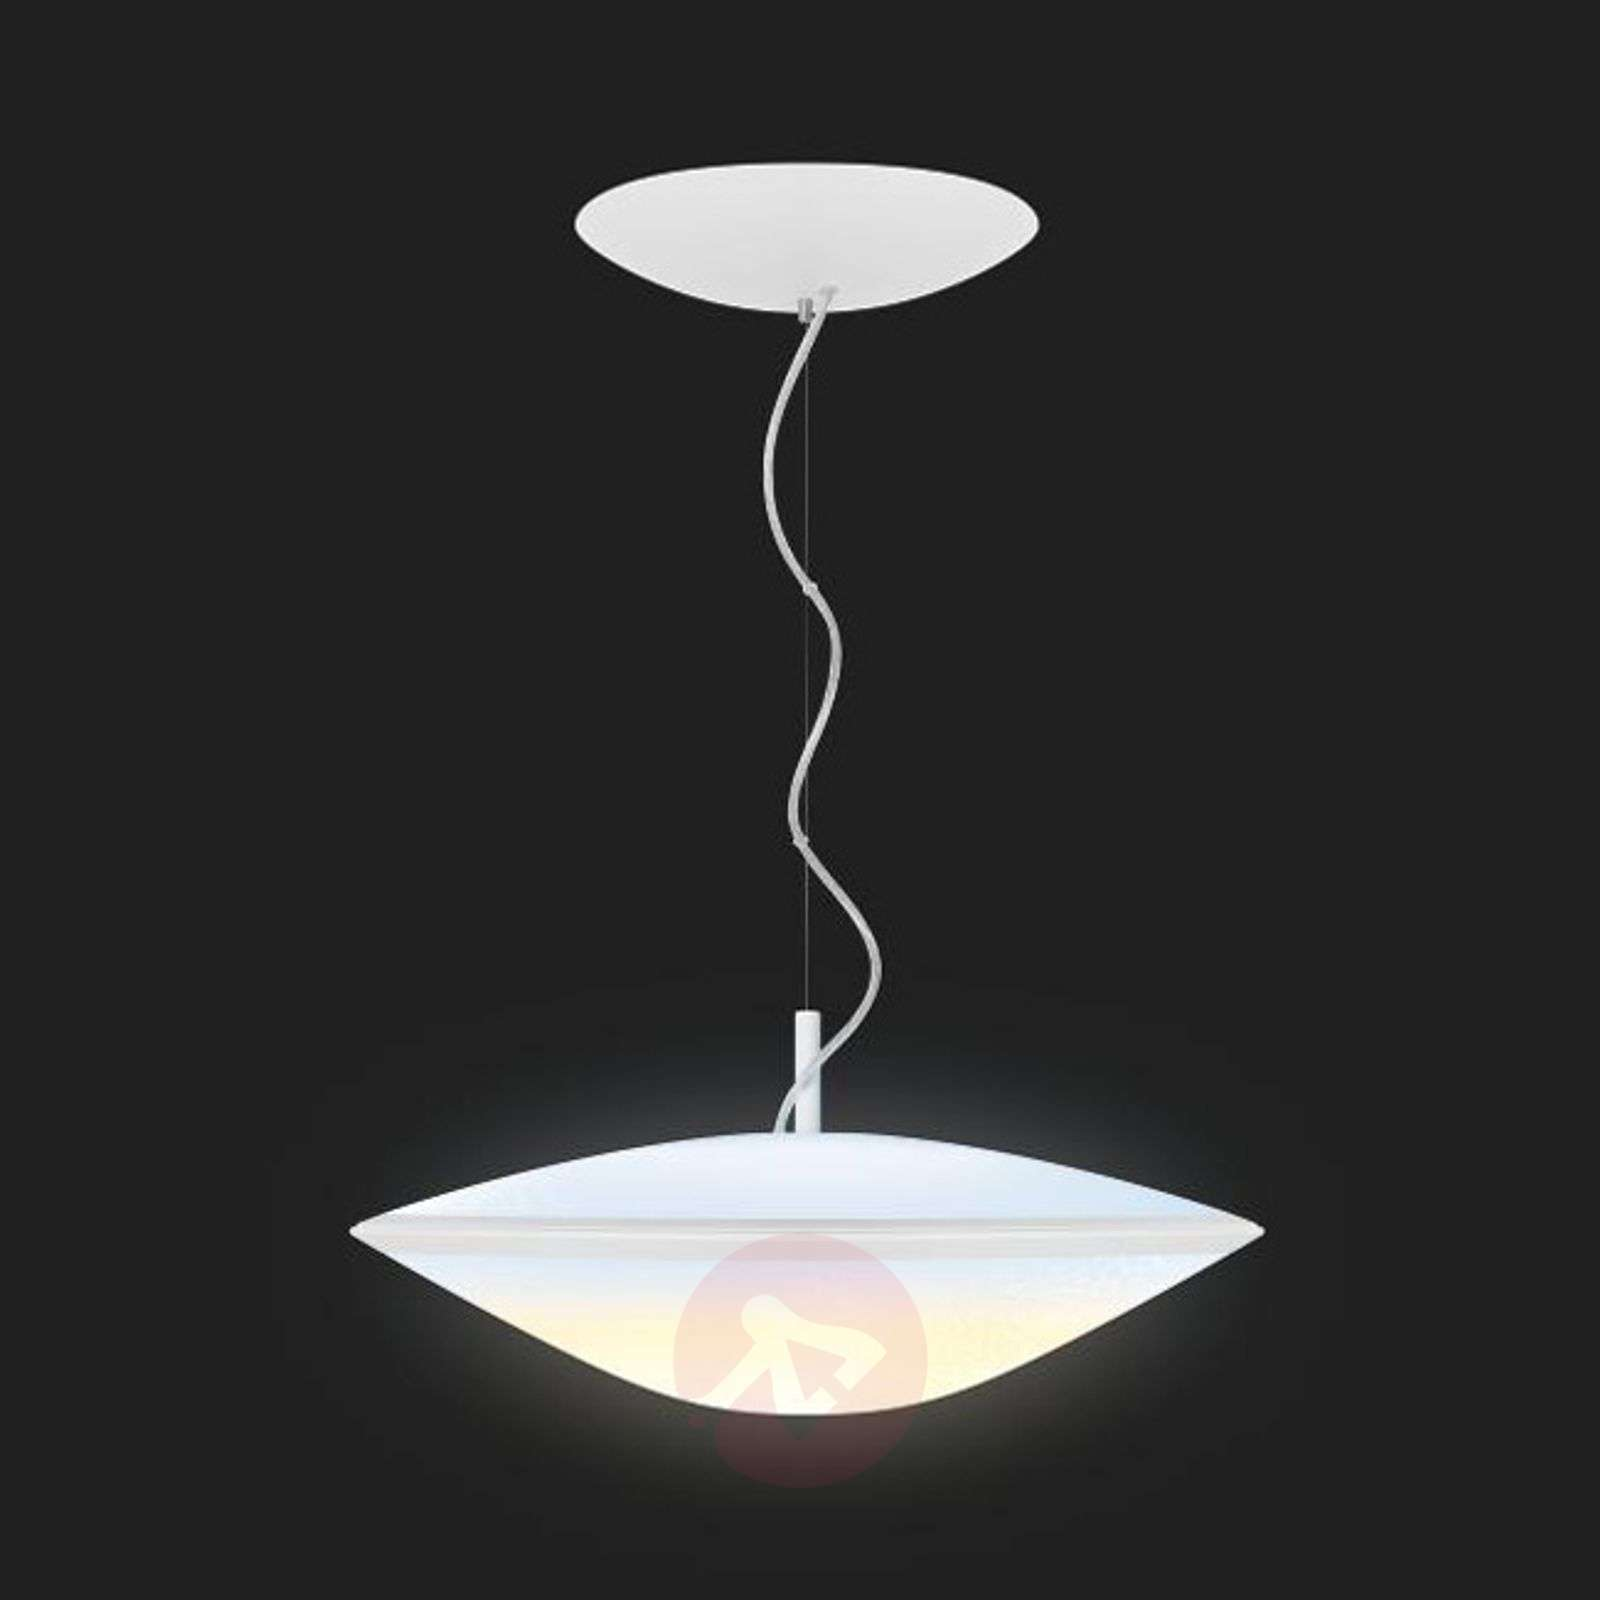 Suspension Philips Hue Phoenix, White Ambiance-7531605-01